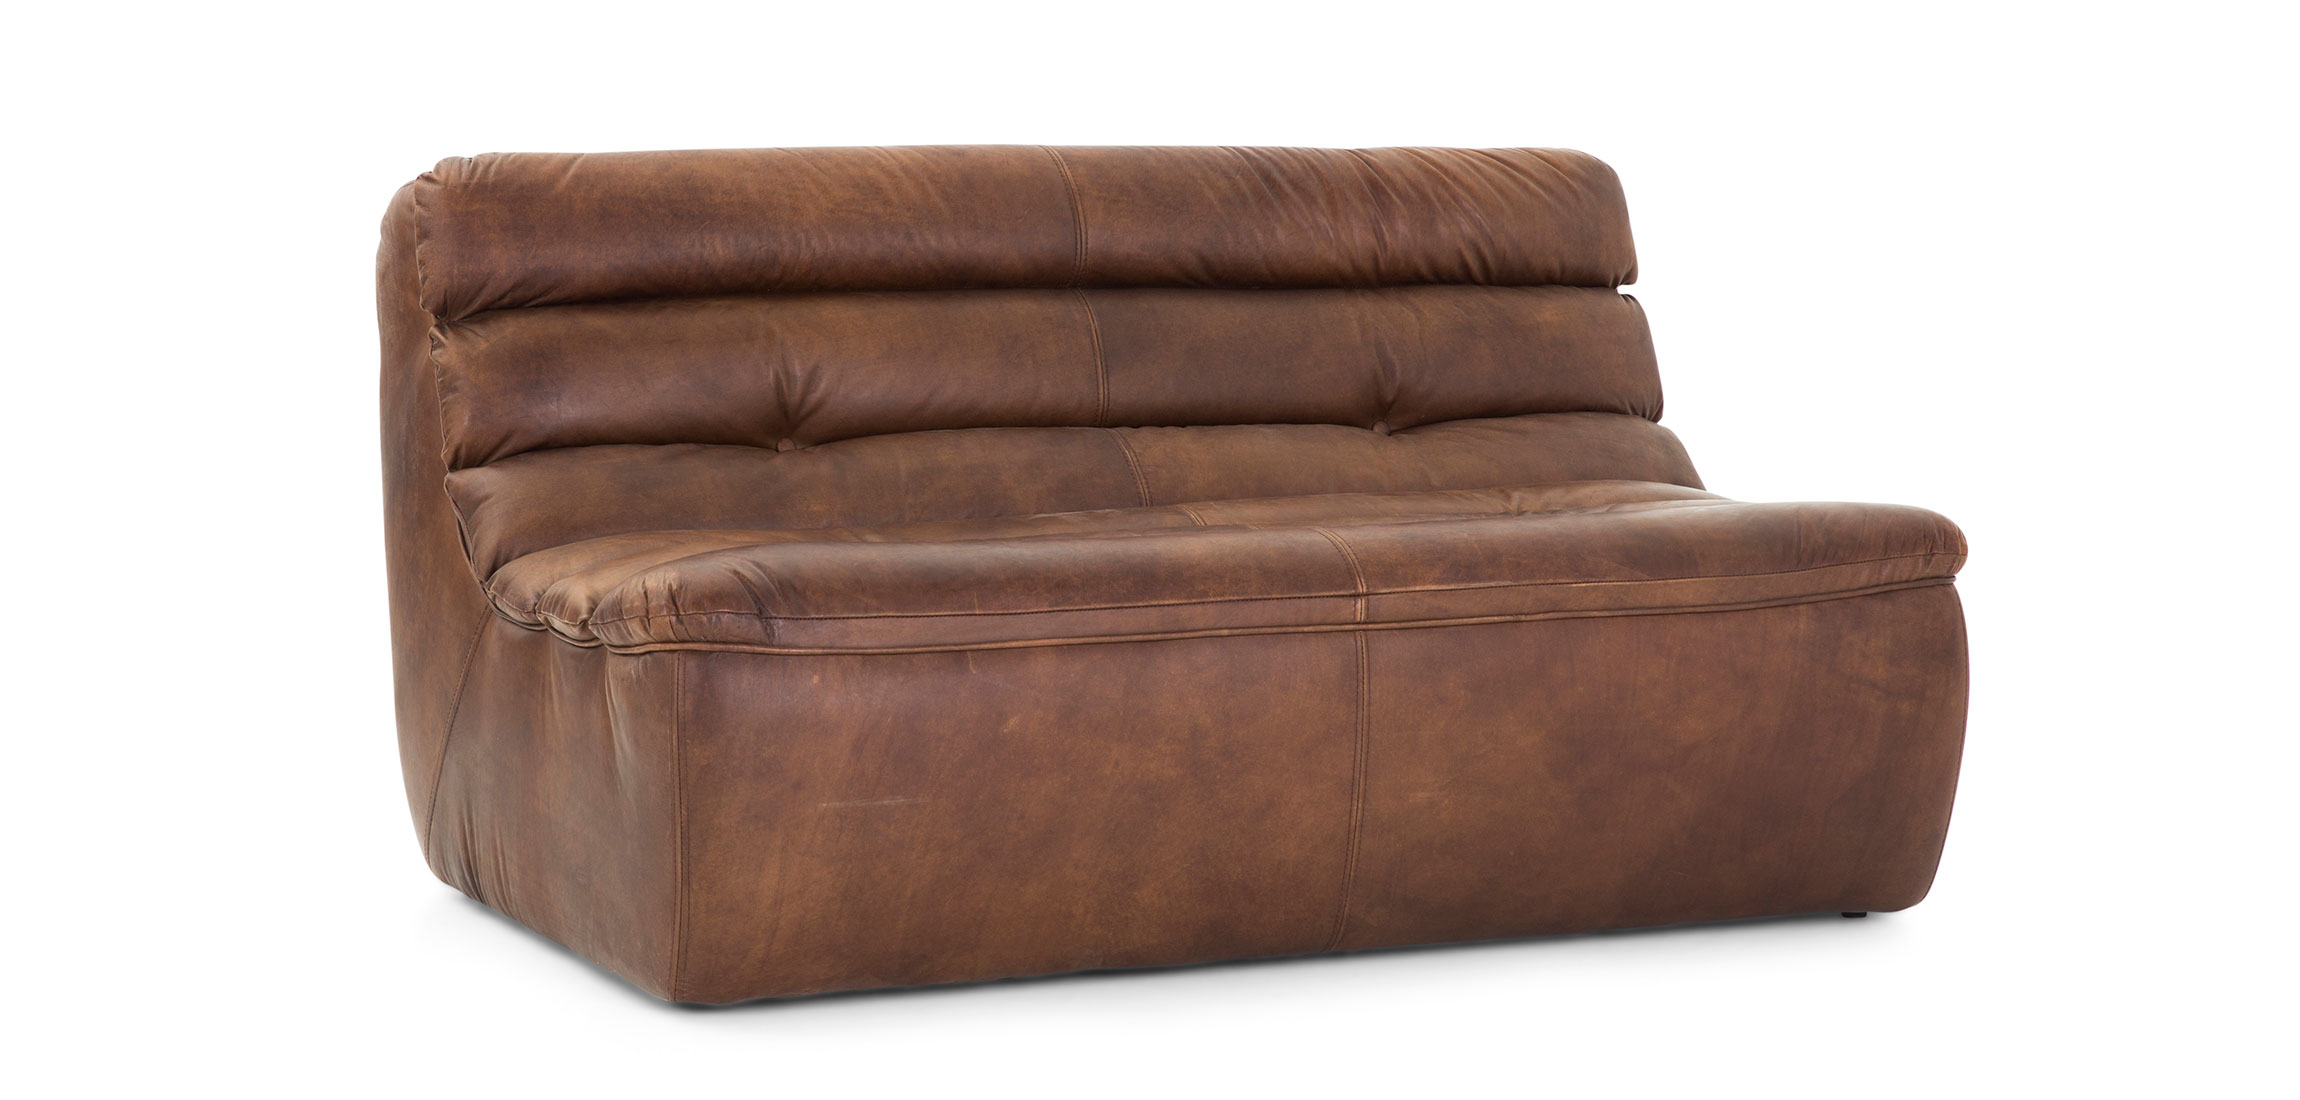 GRAN SASSO dark brown leather sofa 2 seater